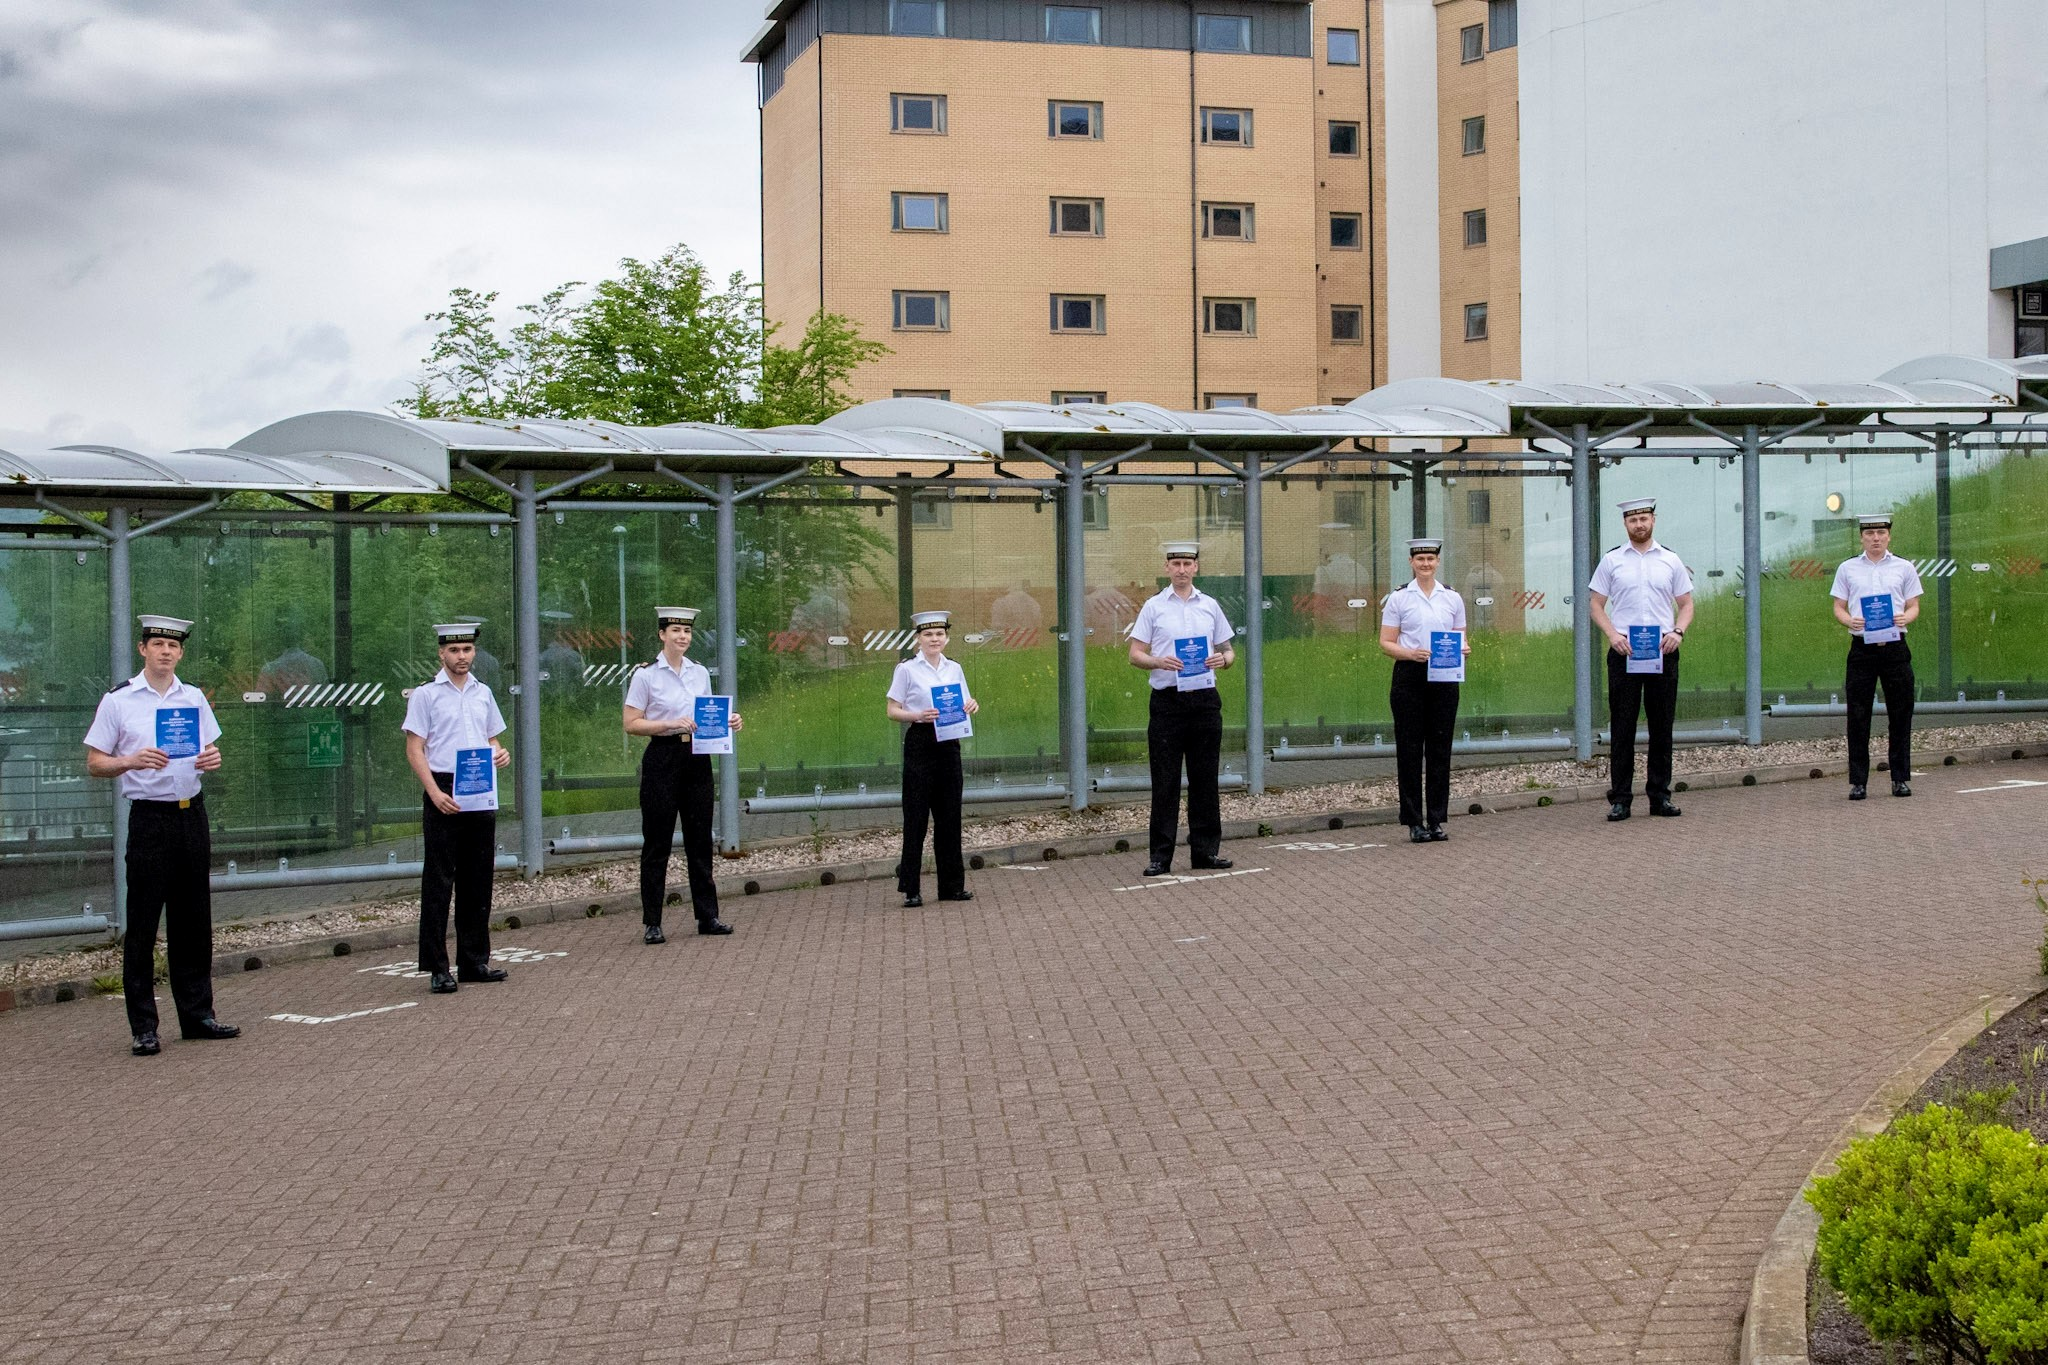 TRAINEE SUBMARINERS' PASSING-OUT PARADE AT CLYDE NAVAL BASE